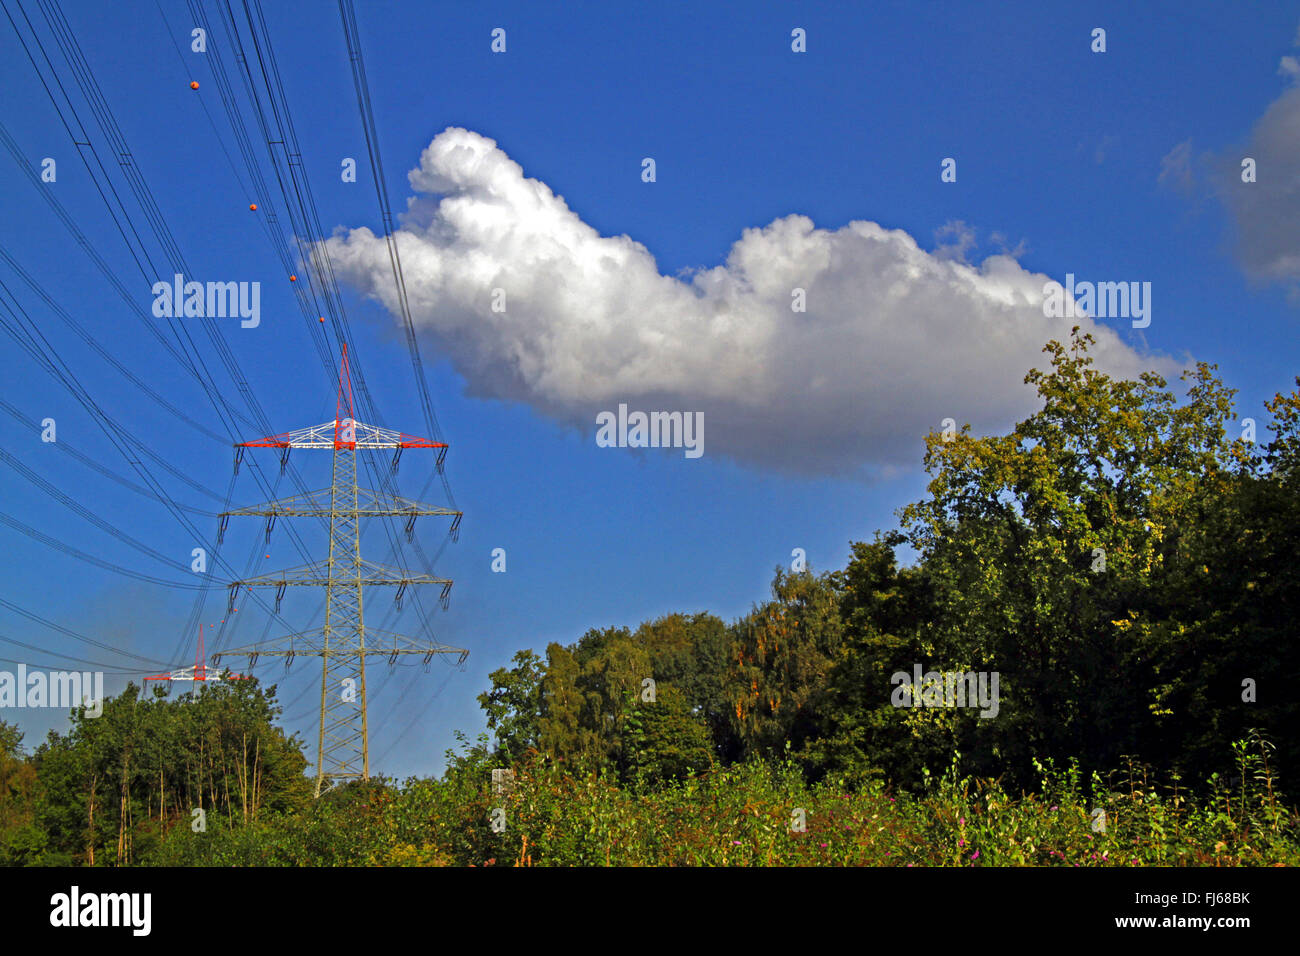 power transmission lines, Germany - Stock Image